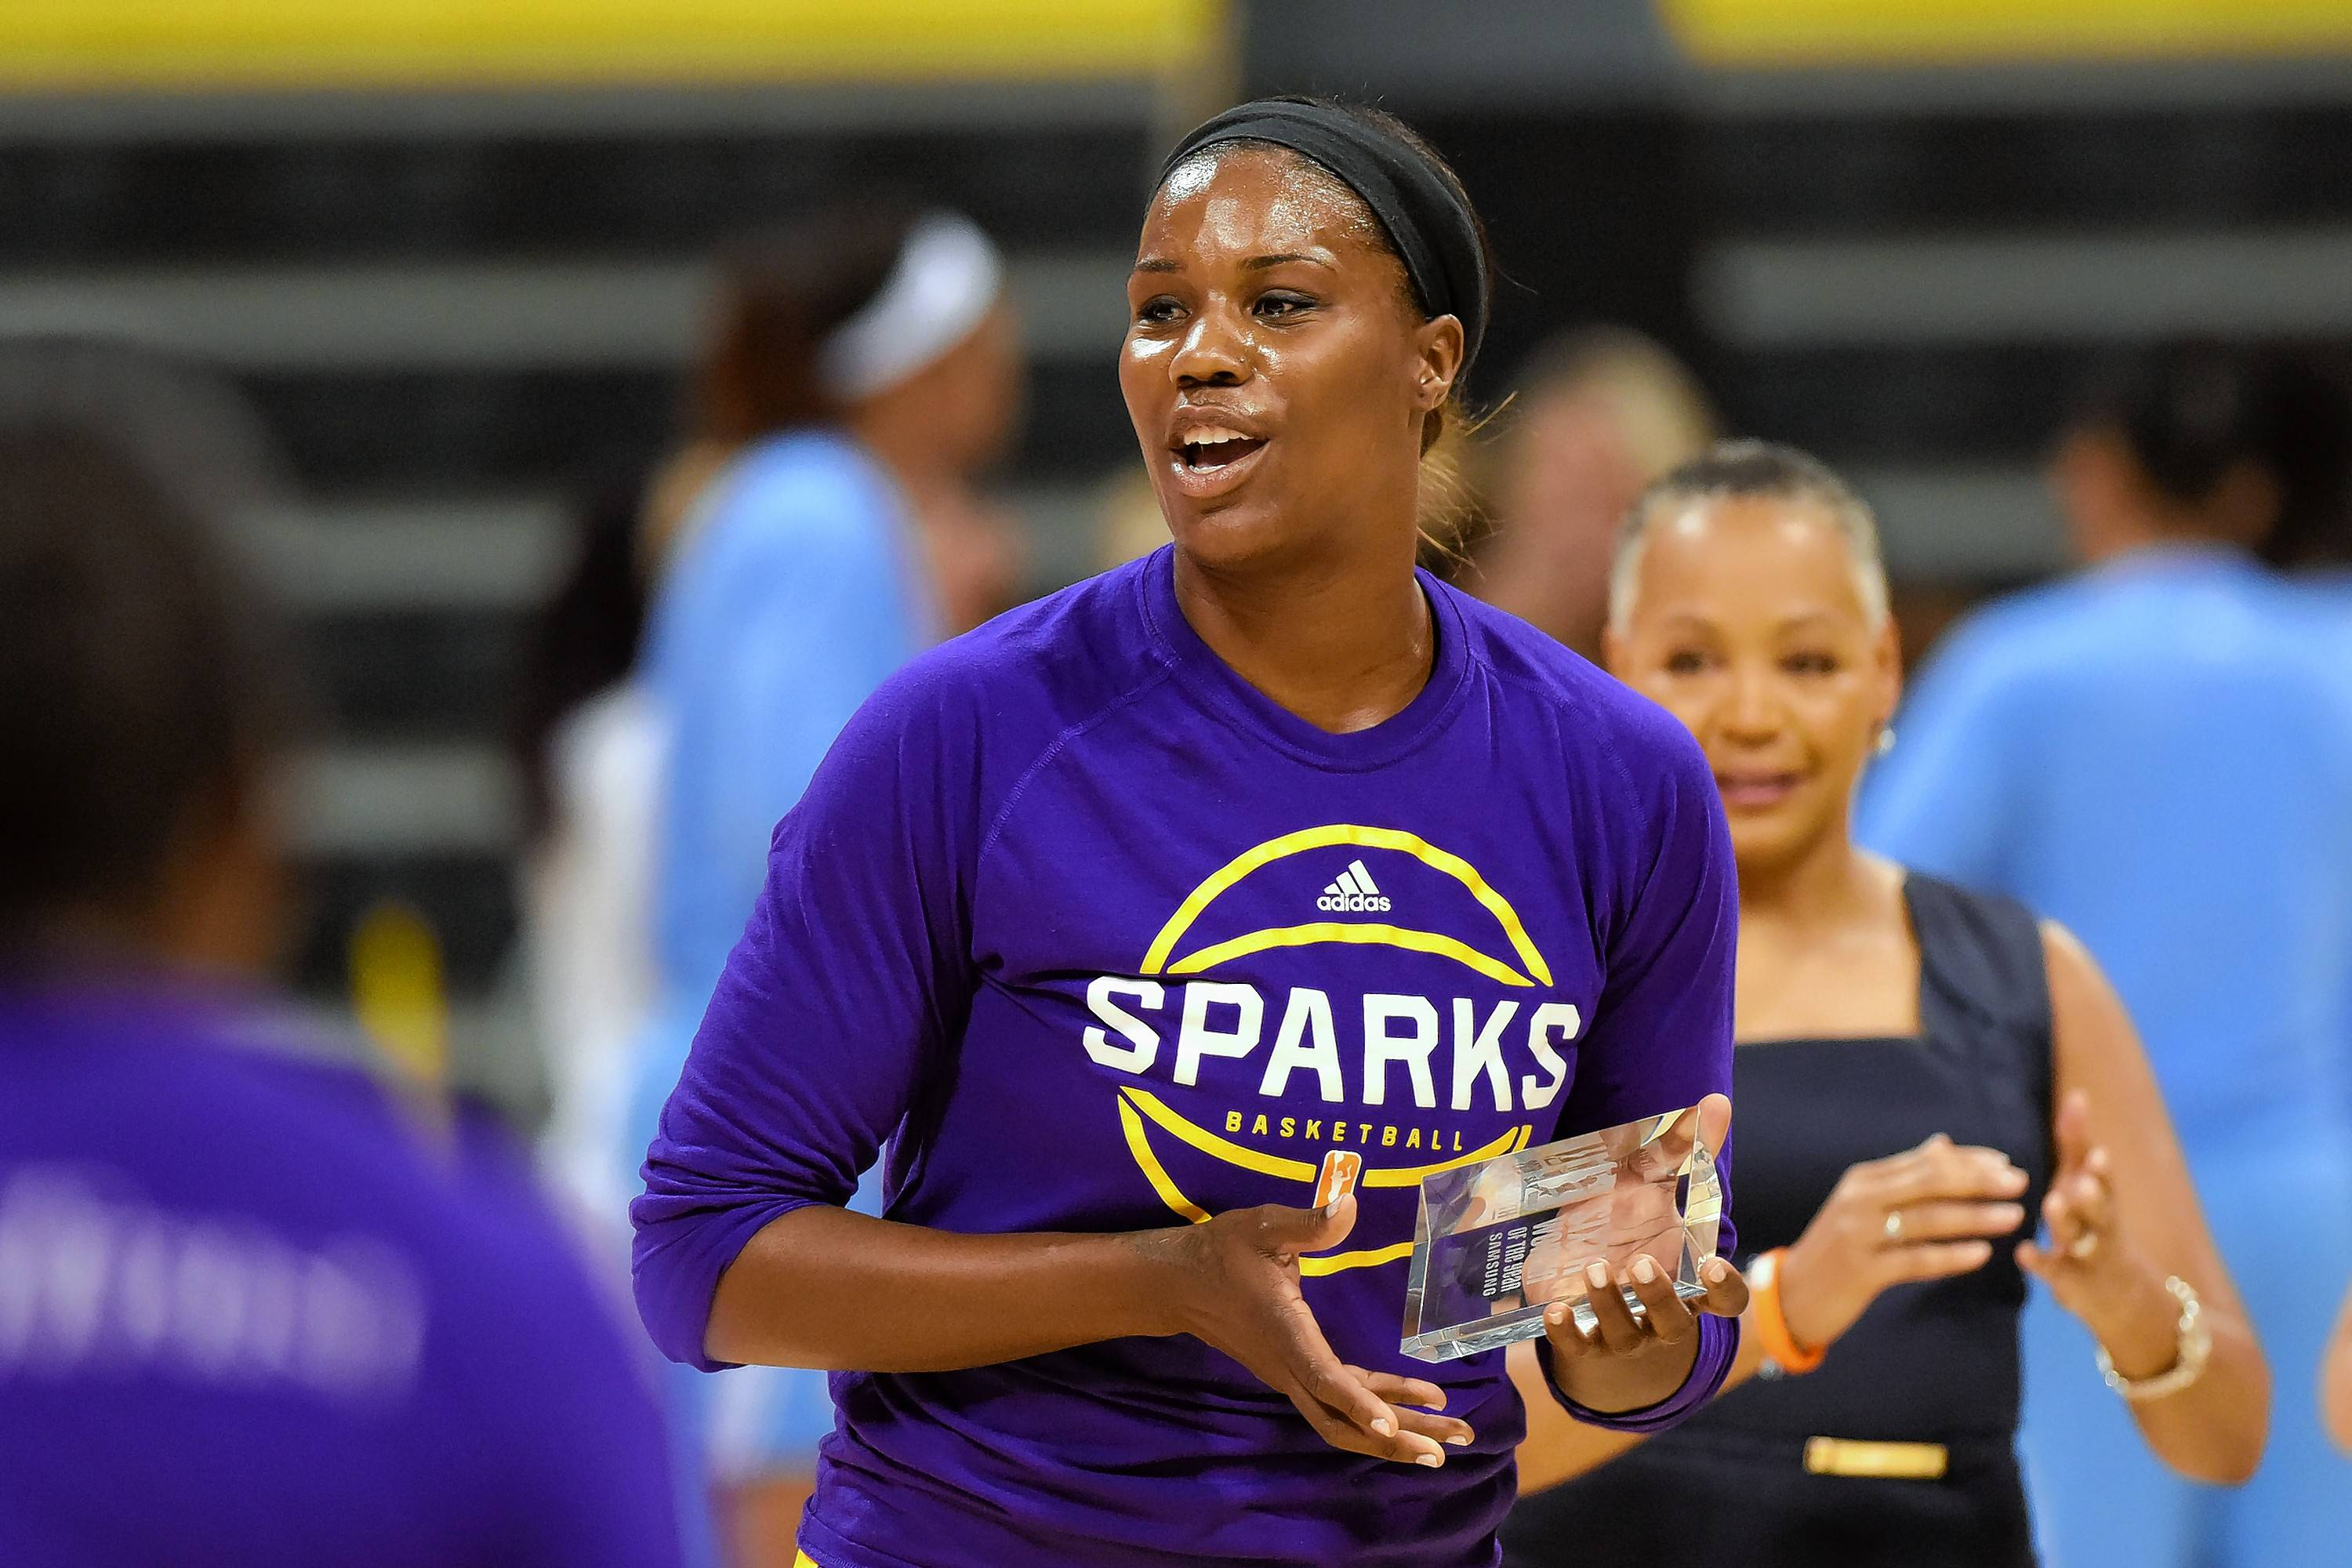 Newly acquired Sky center Jantel Lavender, seen here in 2016 winning the WNBA's Sixth Woman Of The Year trophy as a member of the Los Angeles Sparks, is excited to play closer to family in Cleveland.